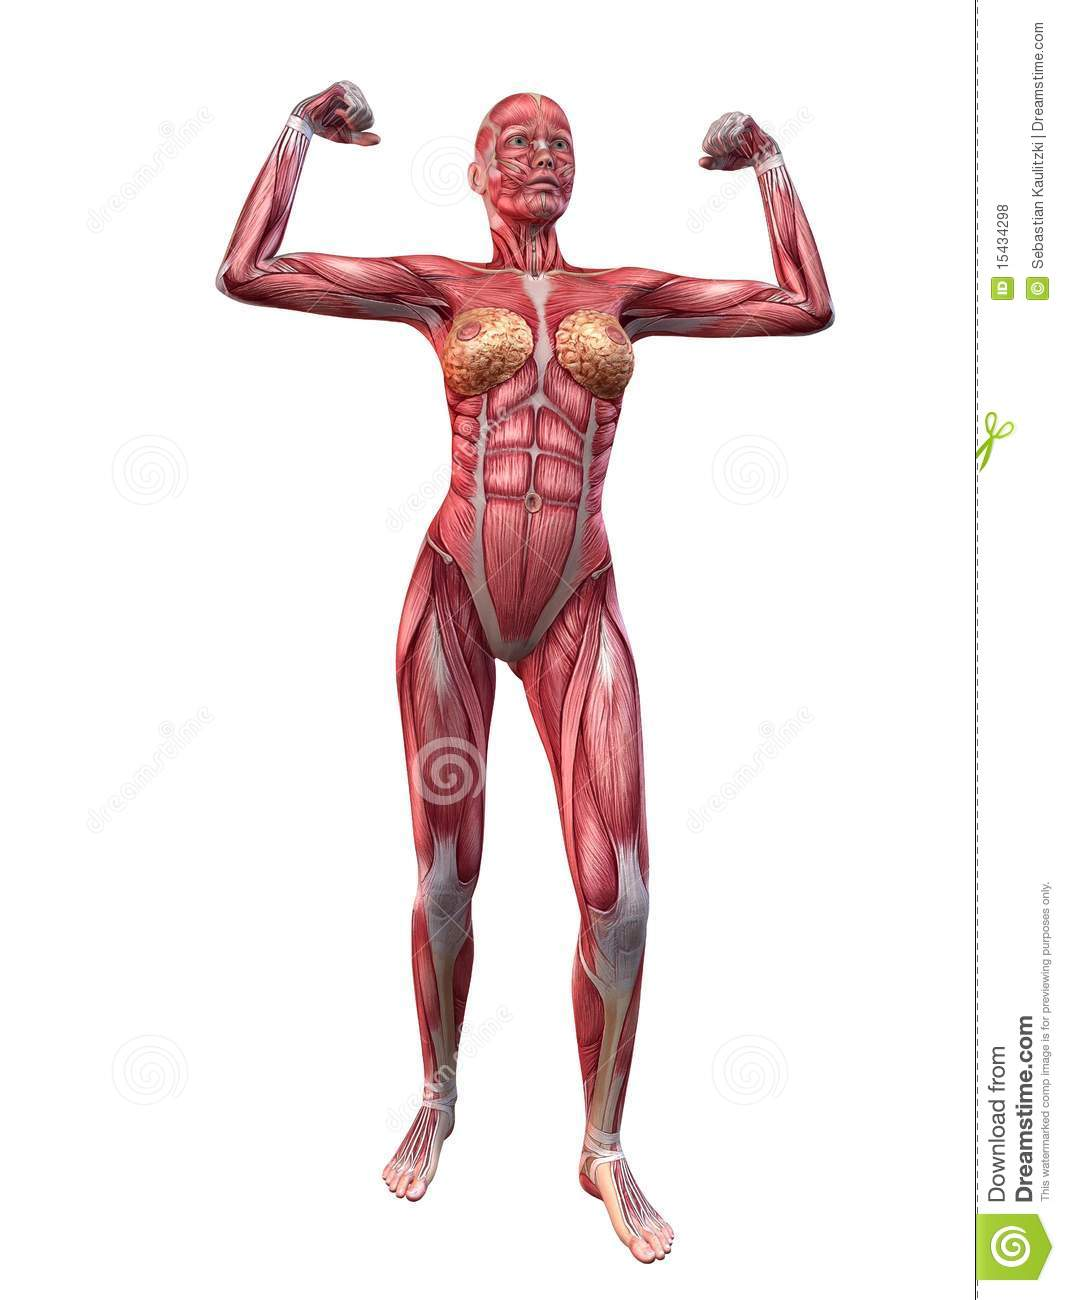 female muscular system royalty free stock photos - image: 15434298, Muscles